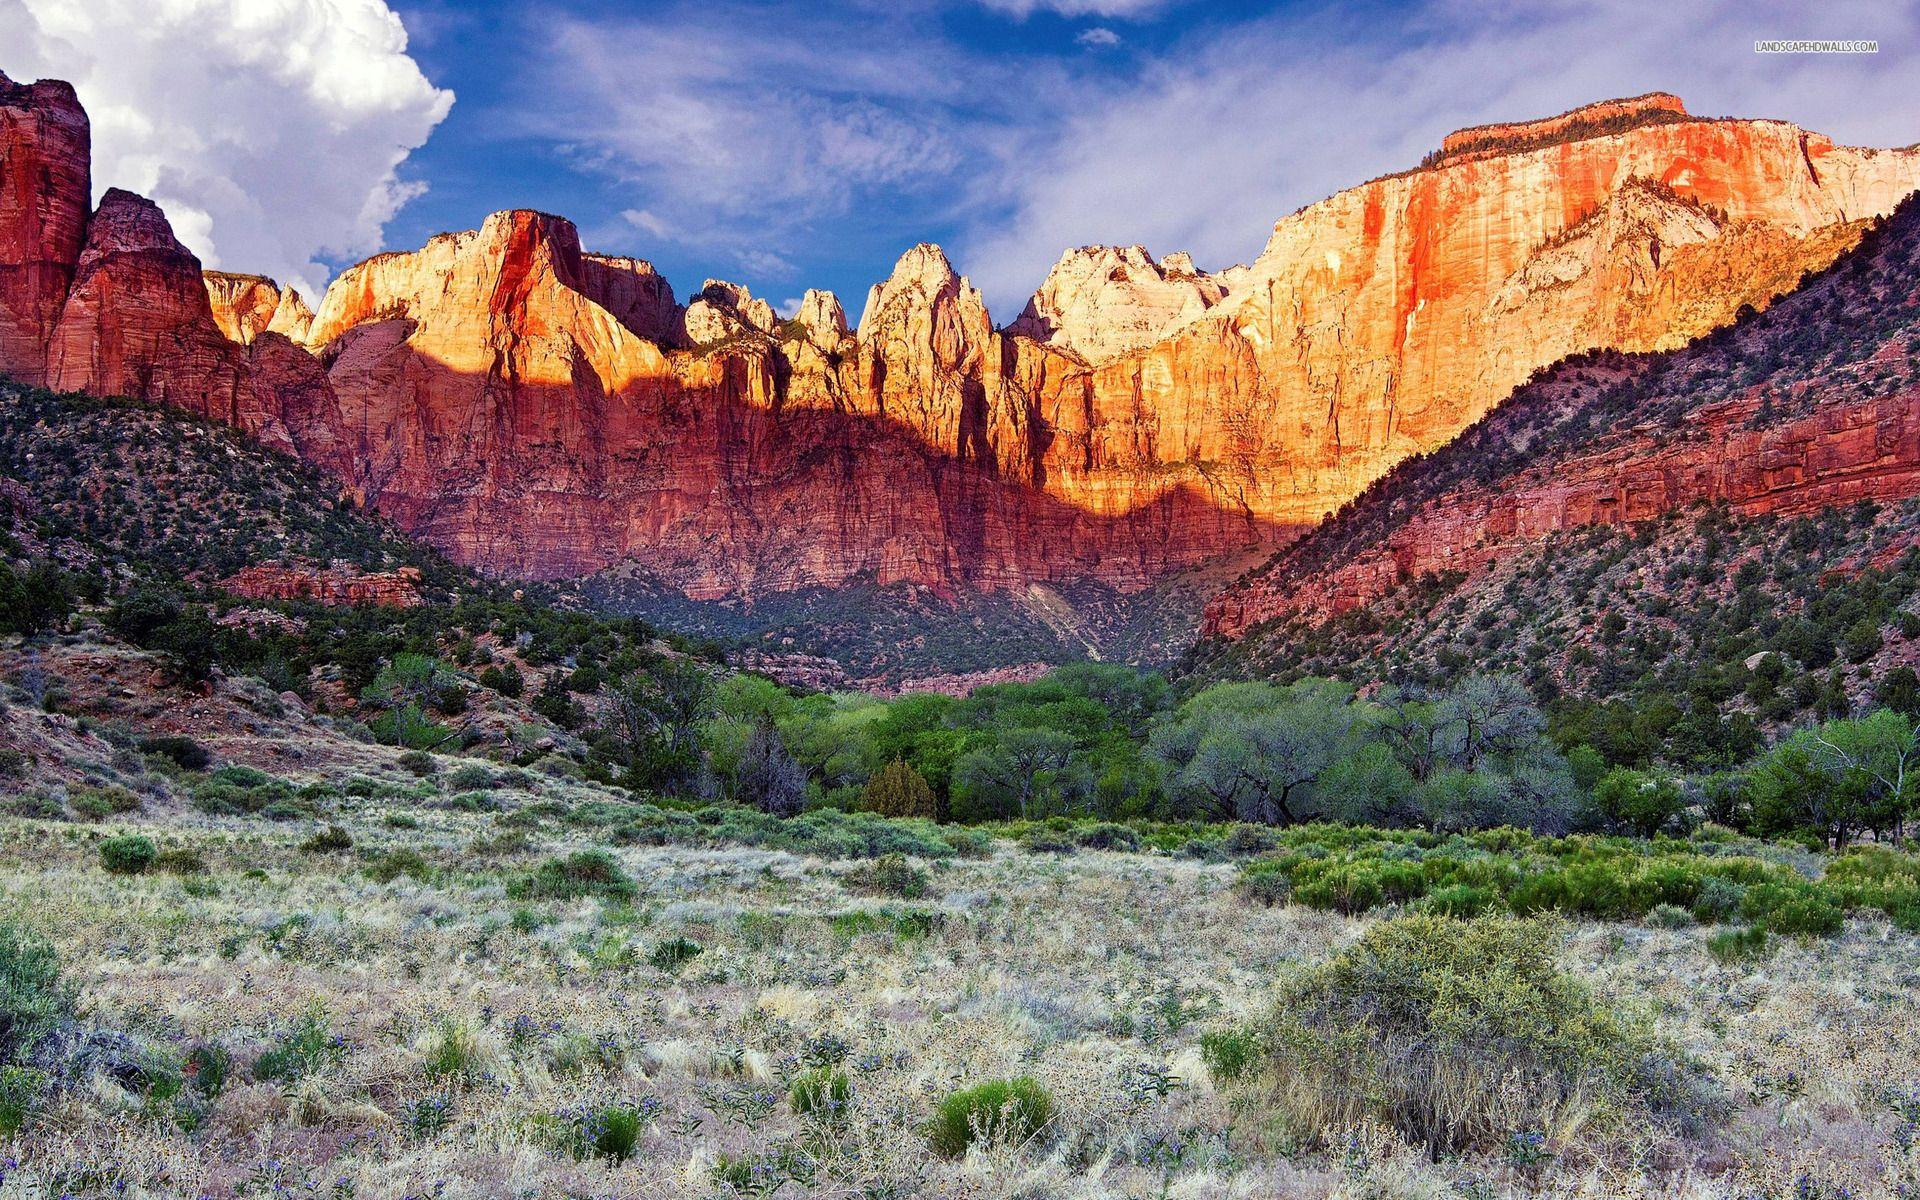 Amazing Zion National Park wallpapers | Amazing Zion National Park ...